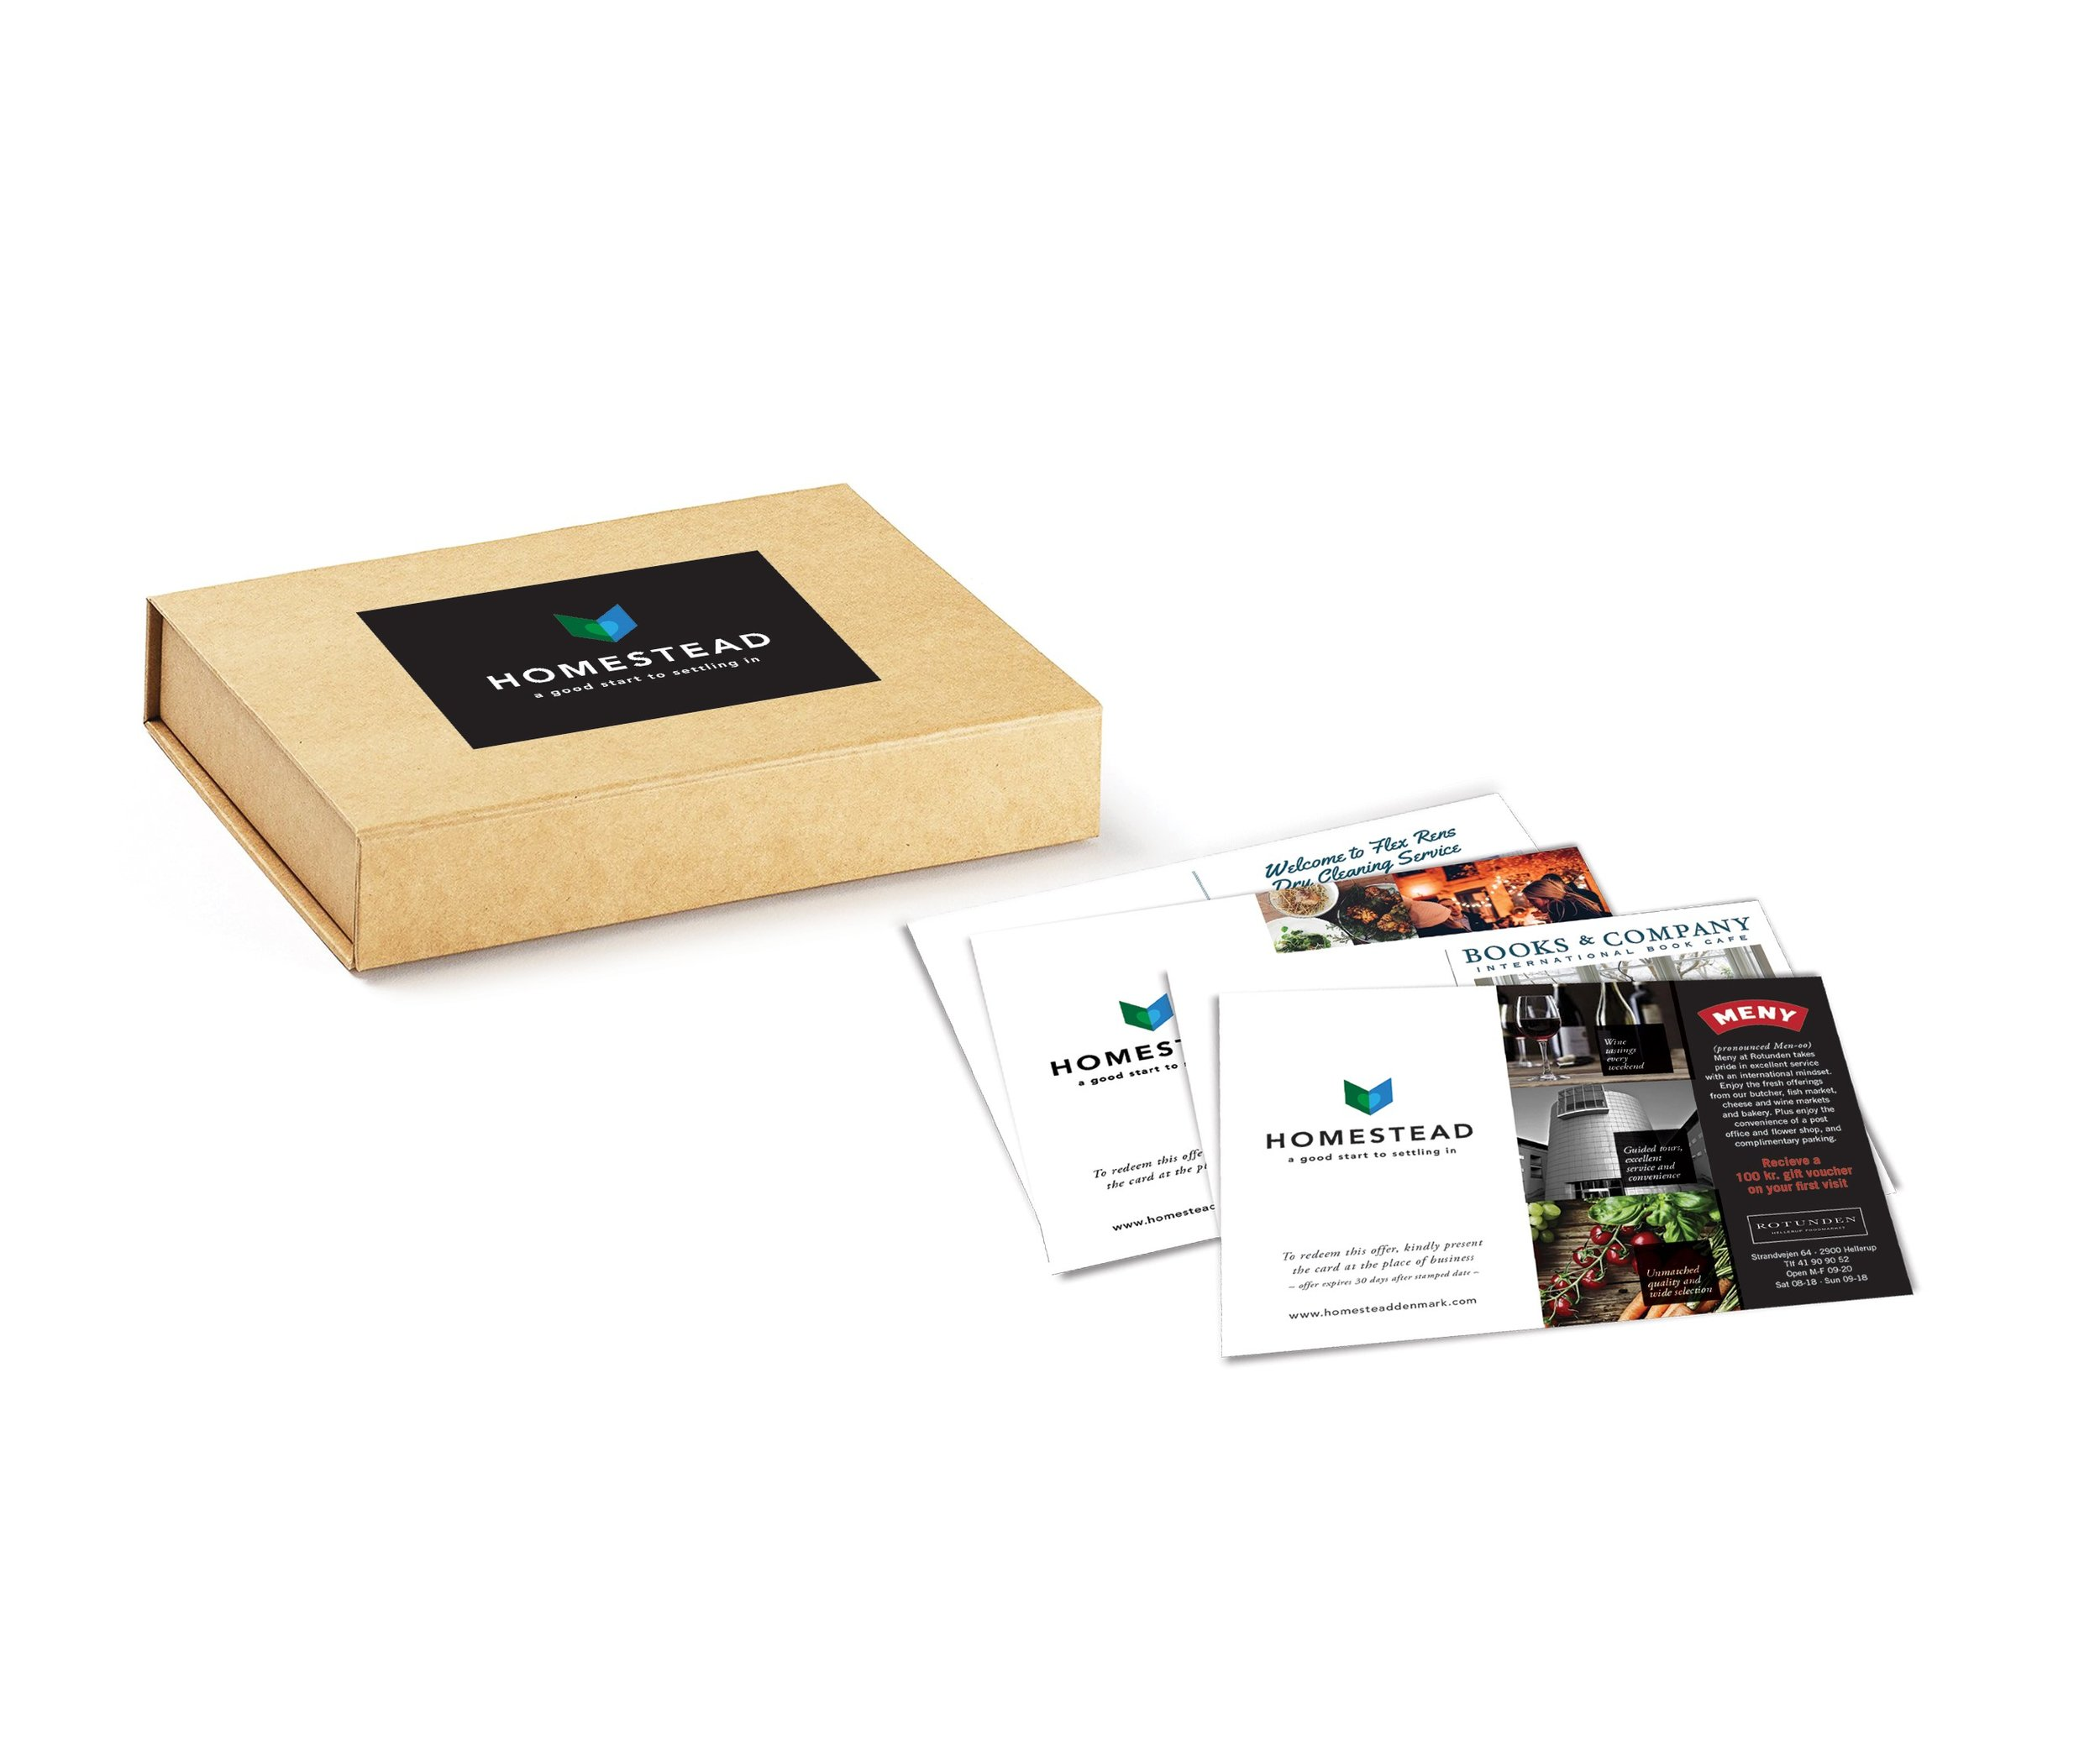 Order your complimentary Homestead Welcome Kit - All the important information regarding your local municipality, local amenities, event calendars and offers and discounts from businesses in your local community!